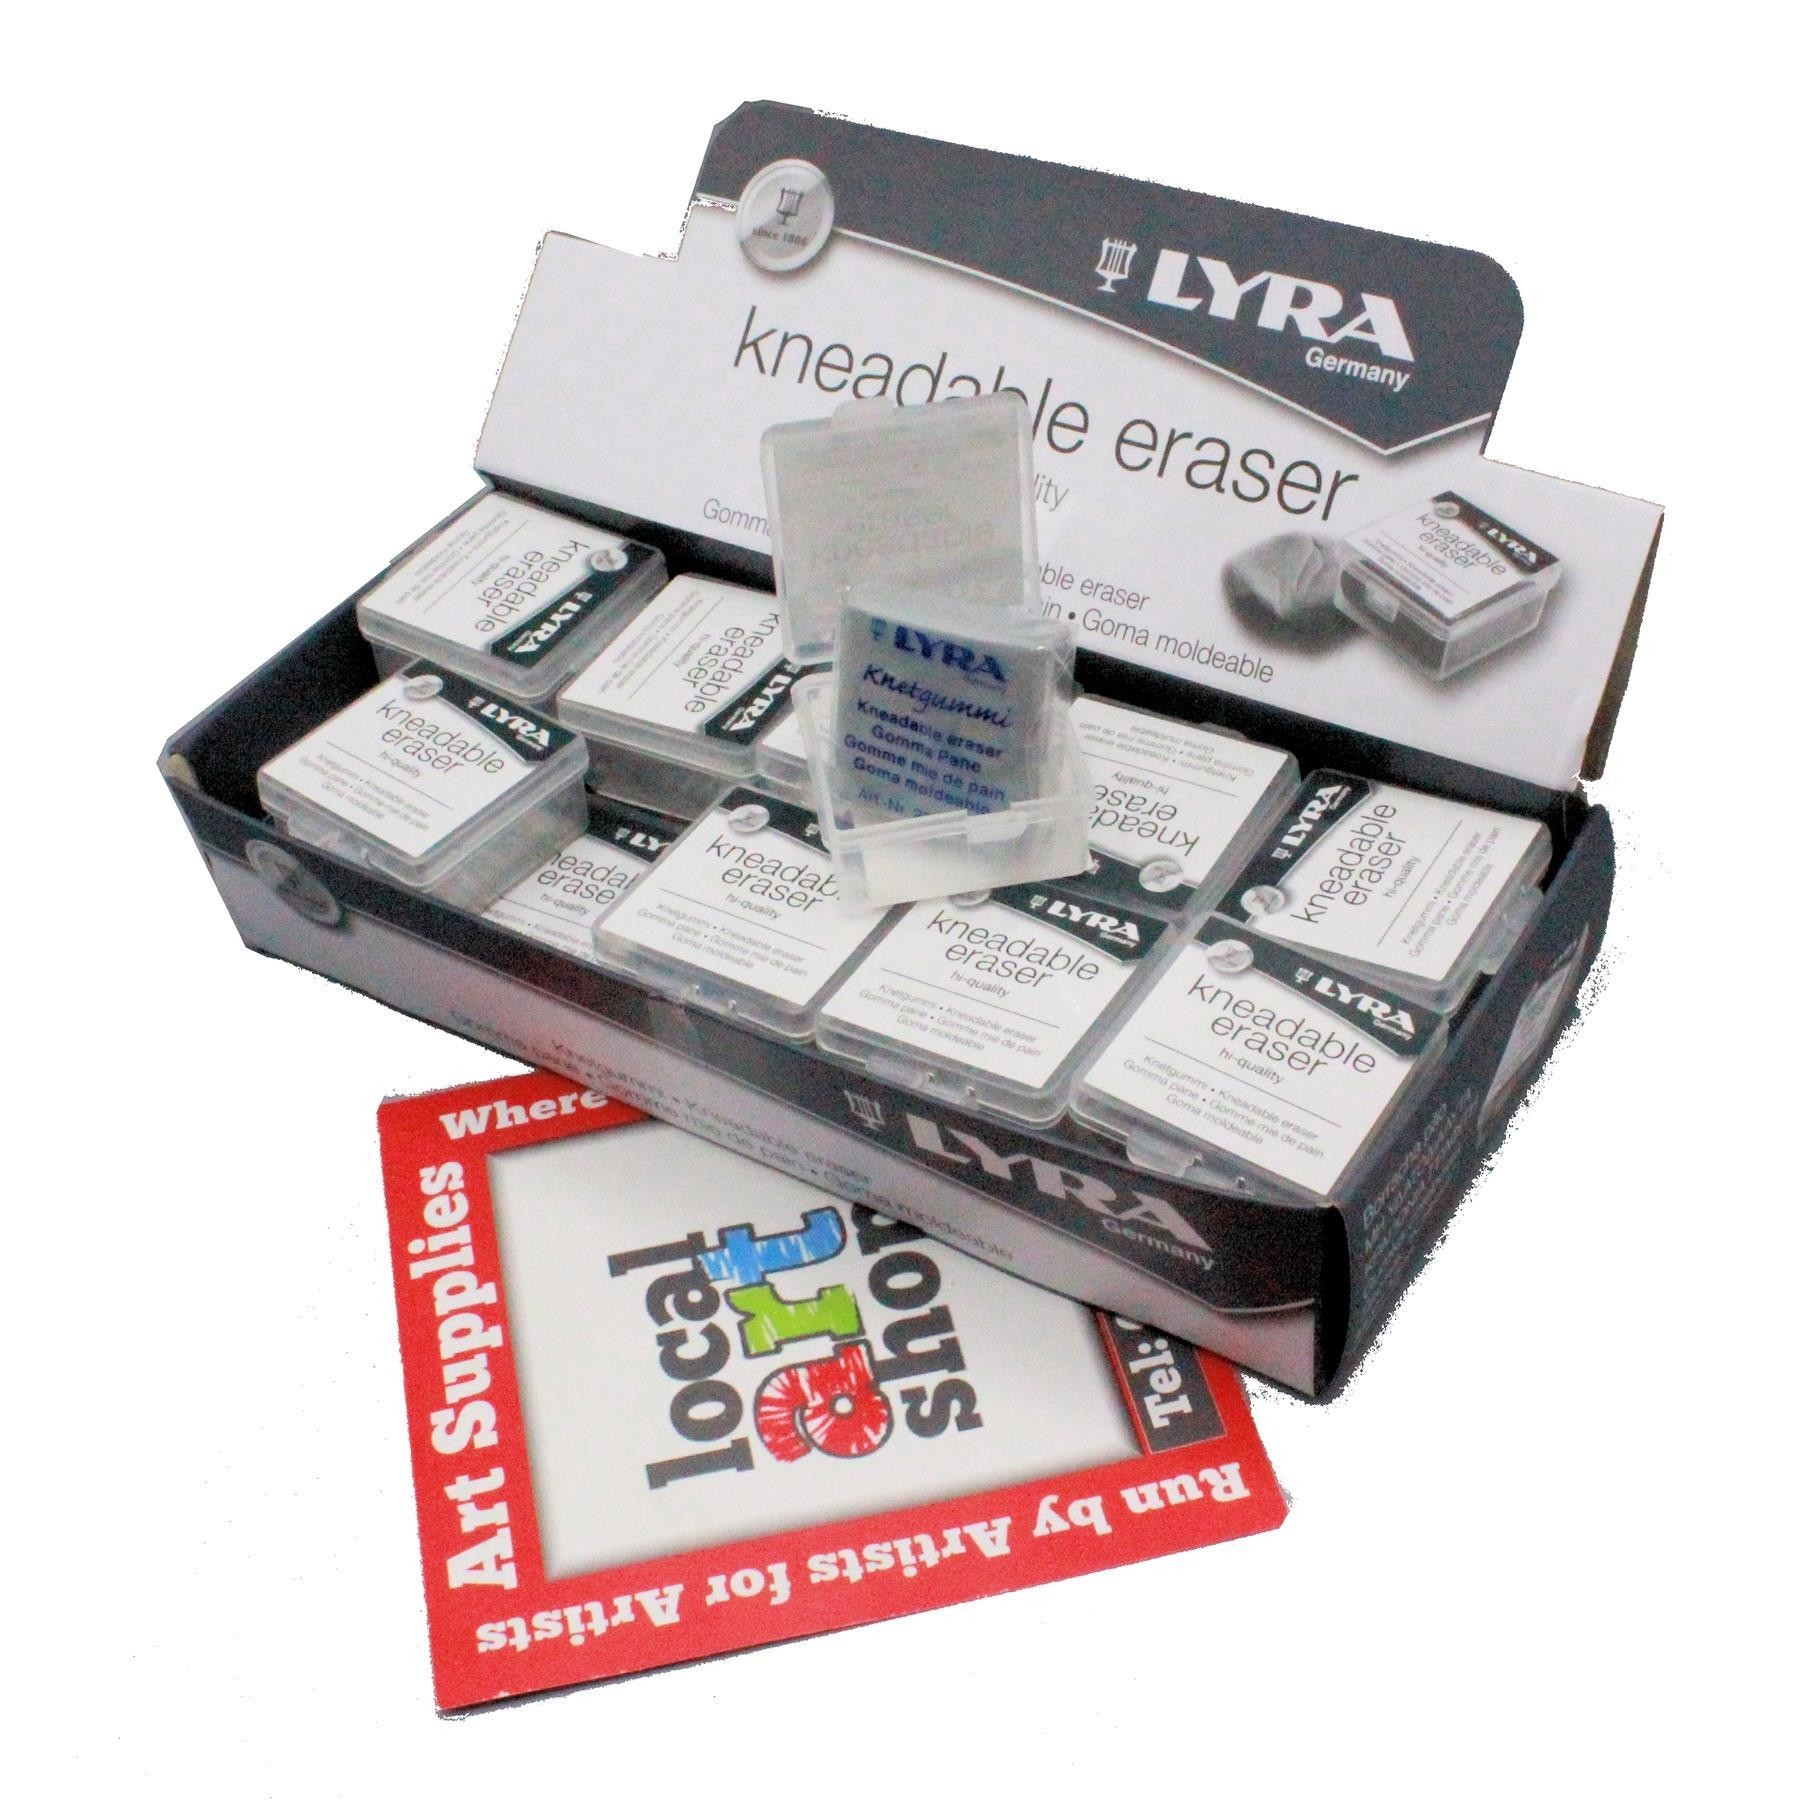 Lyra kneadable eraser in box watercolour putty rubber